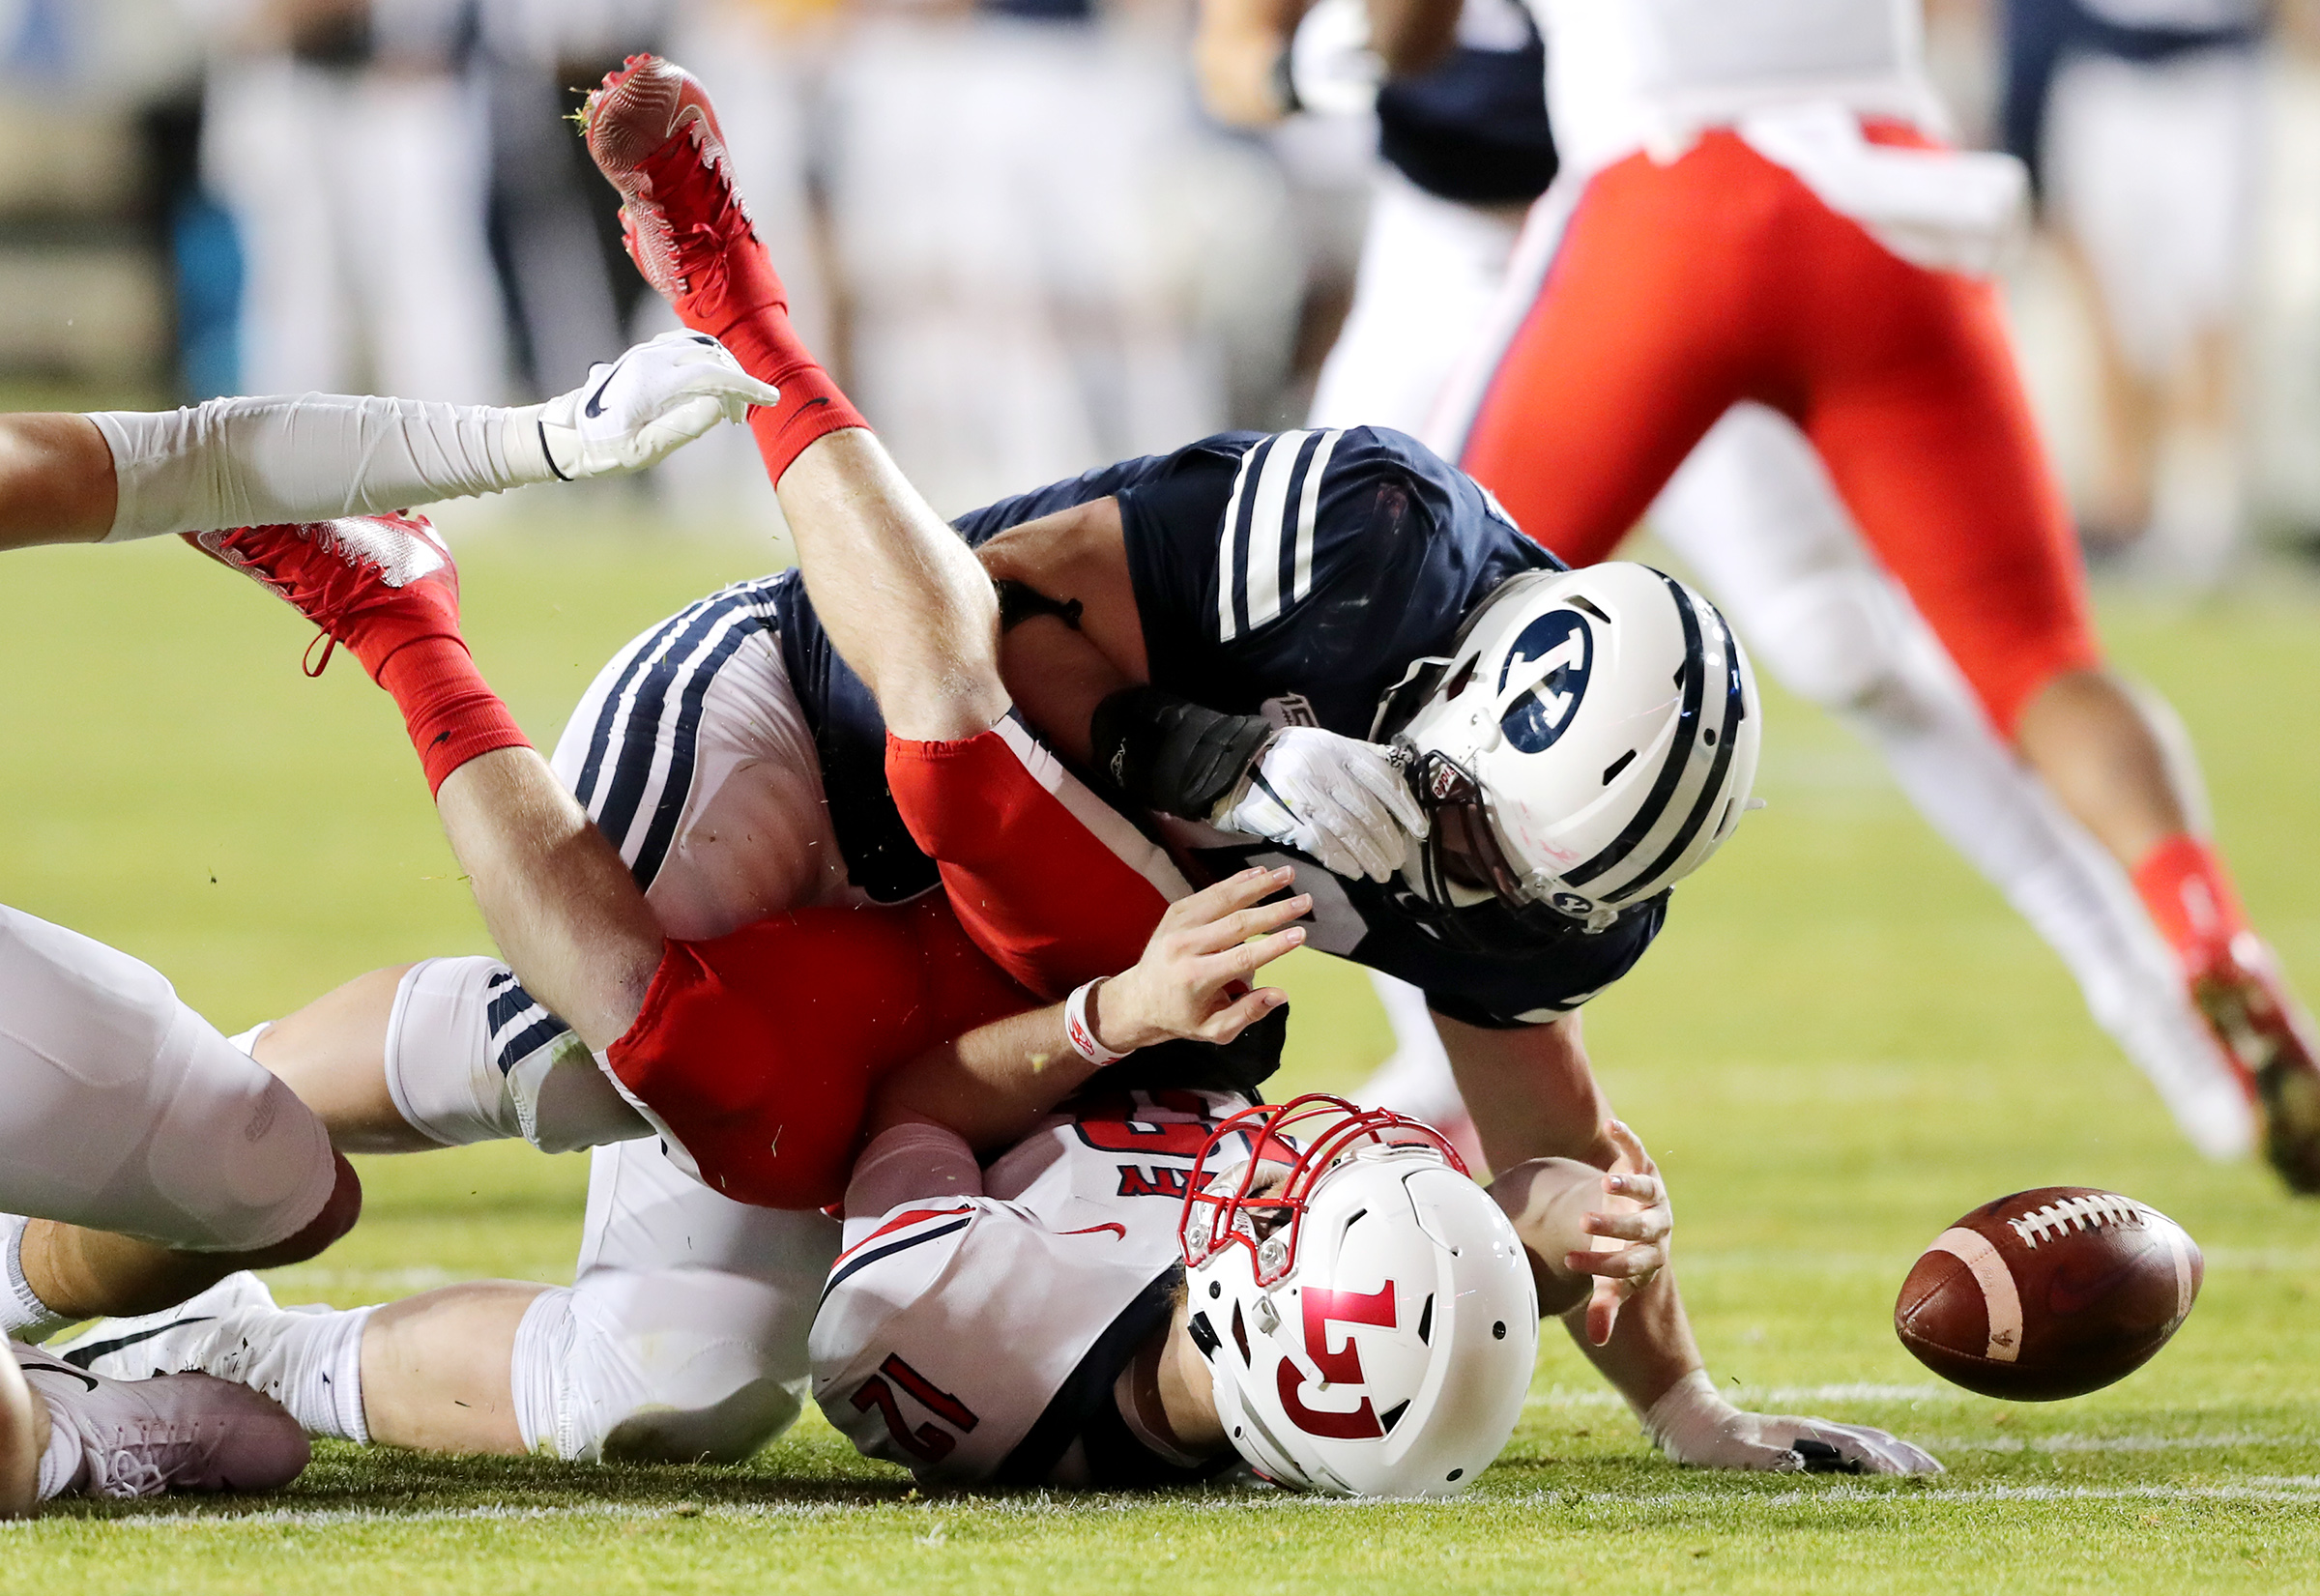 Liberty Flames quarterback Stephen Calvert (12) loses the ball as he is hit by Brigham Young Cougars defensive lineman Bracken El-Bakri (93) after being sacked by Brigham Young Cougars linebacker Keenan Pili (41) as BYU and Liberty play an NCAA football game in Provo, Utah on Saturday, Nov. 9, 2019.